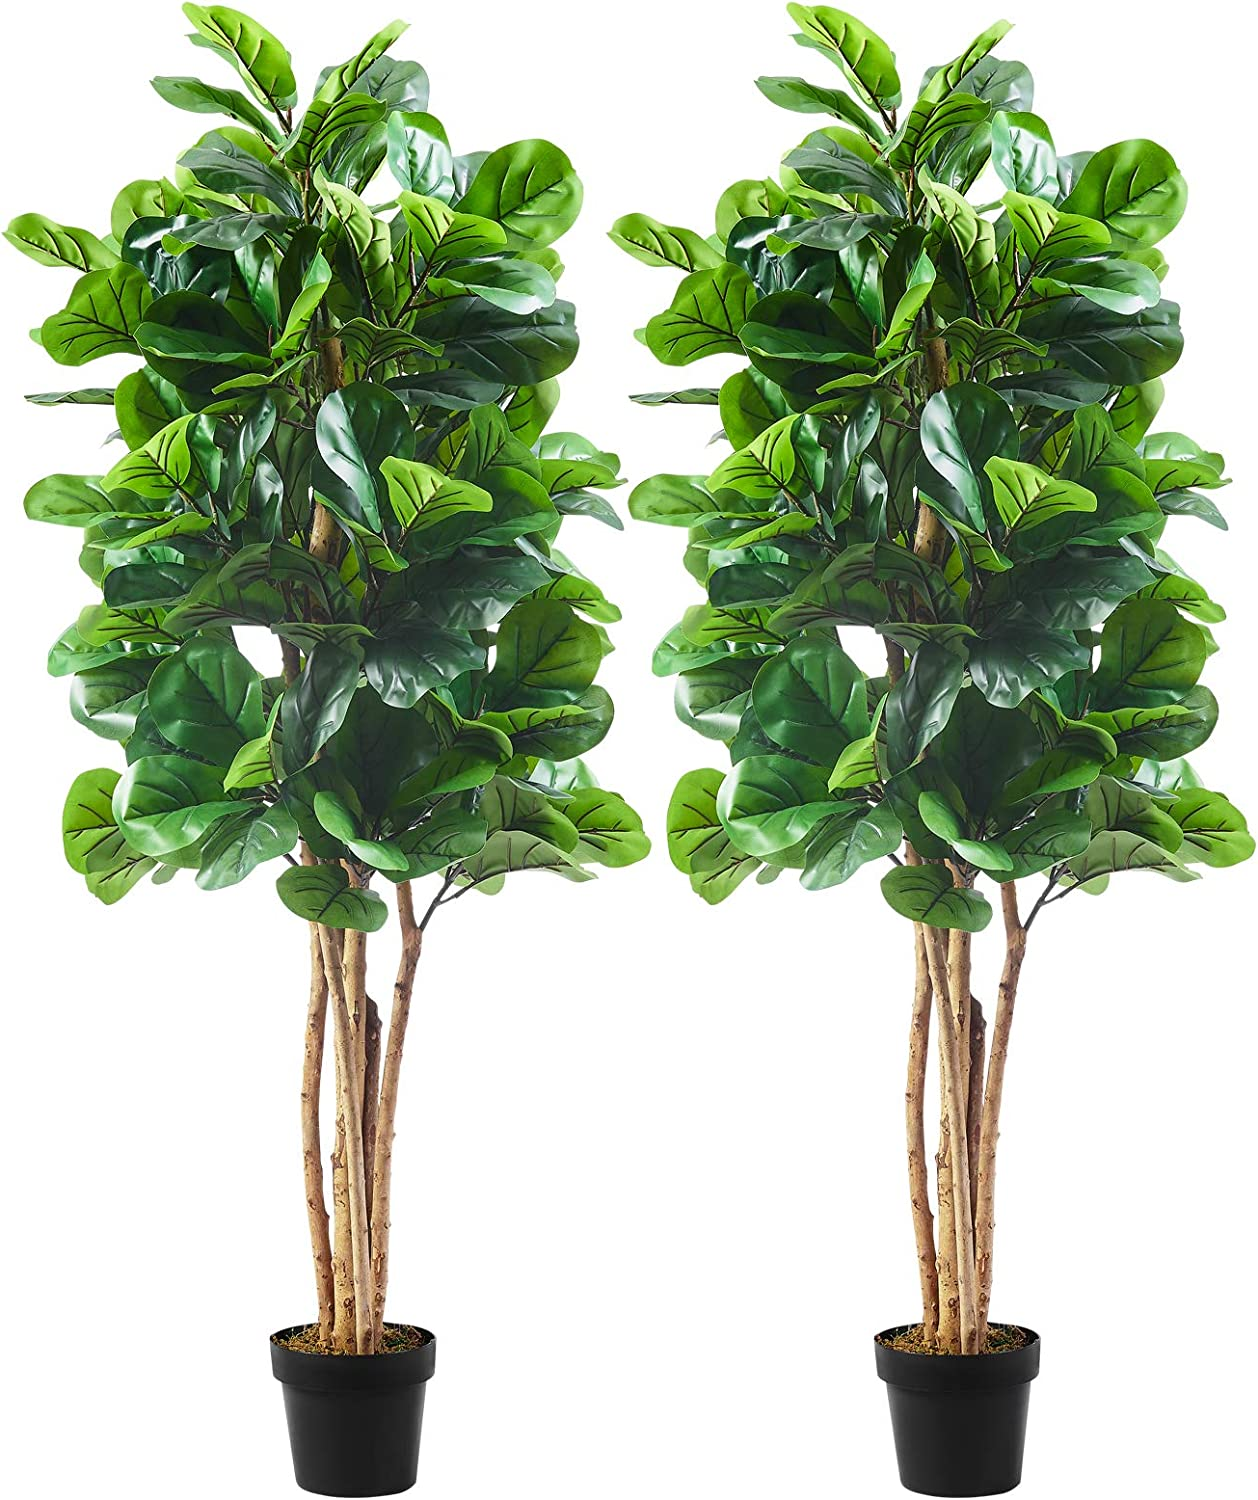 Cozy Castle Artificial Fiddle Leaf Fig Tree Challenge the lowest price Nippon regular agency